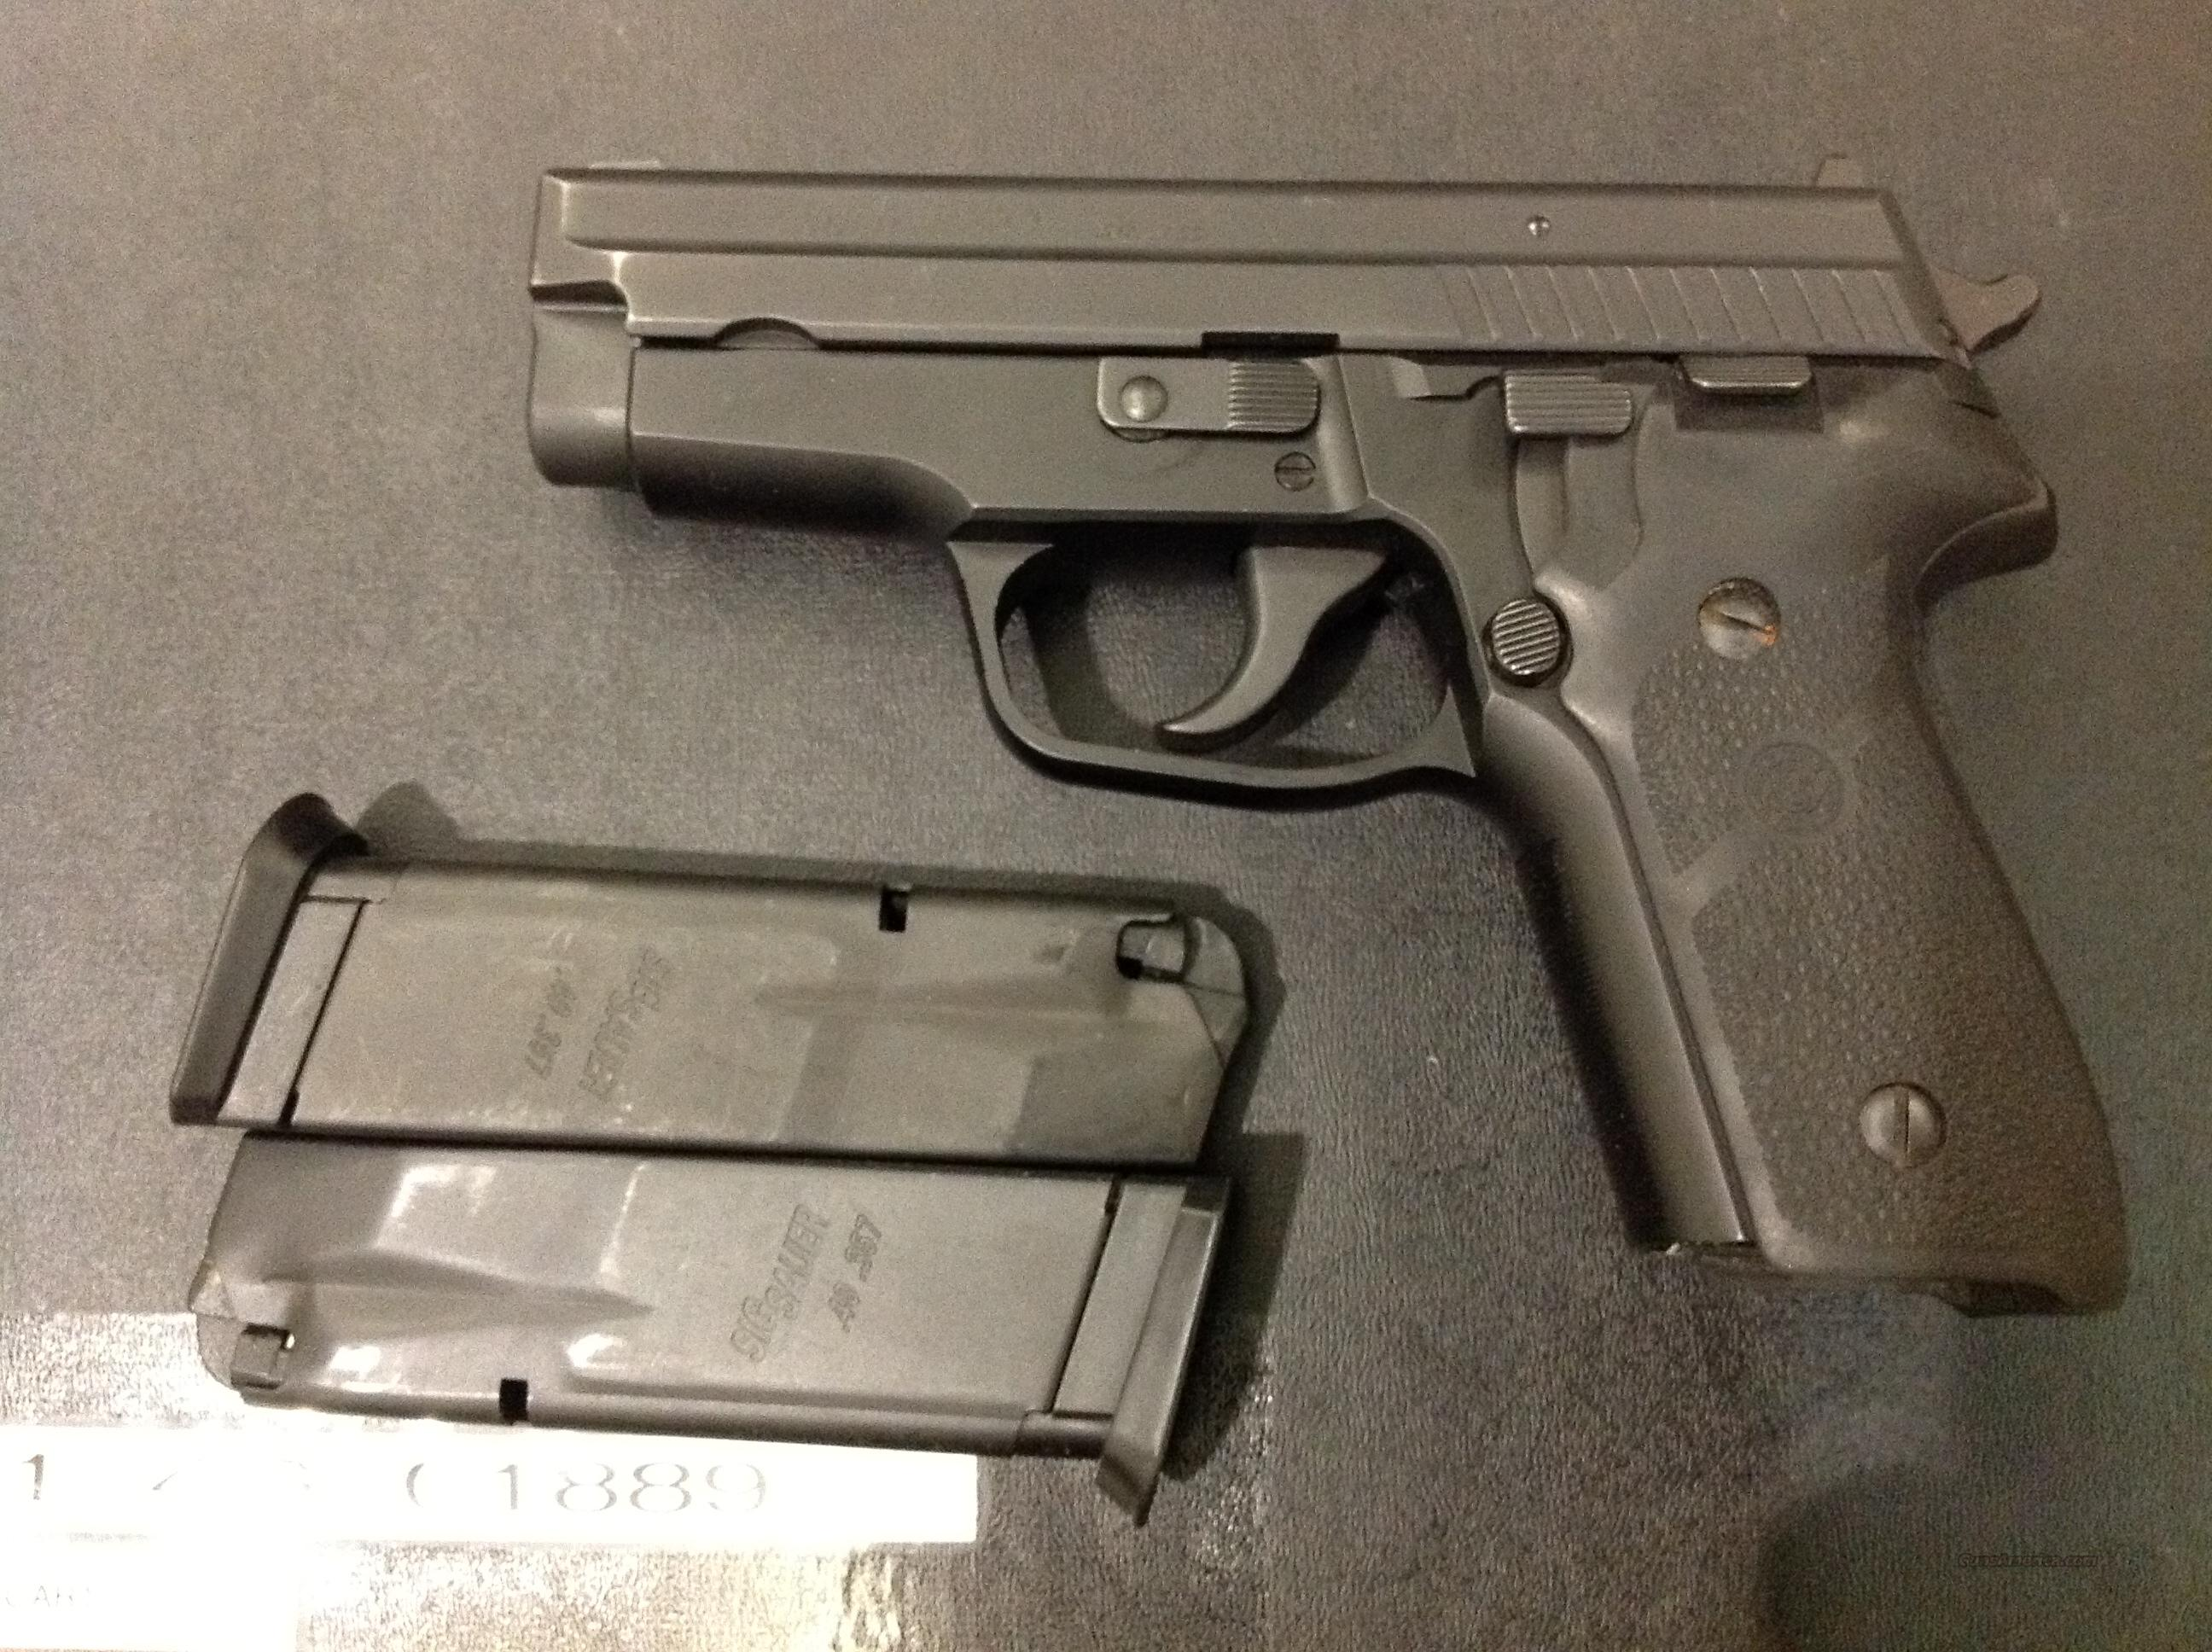 Sig Sauer P229 .40 S&W Used Clean 90+%  Guns > Pistols > Sig - Sauer/Sigarms Pistols > P229